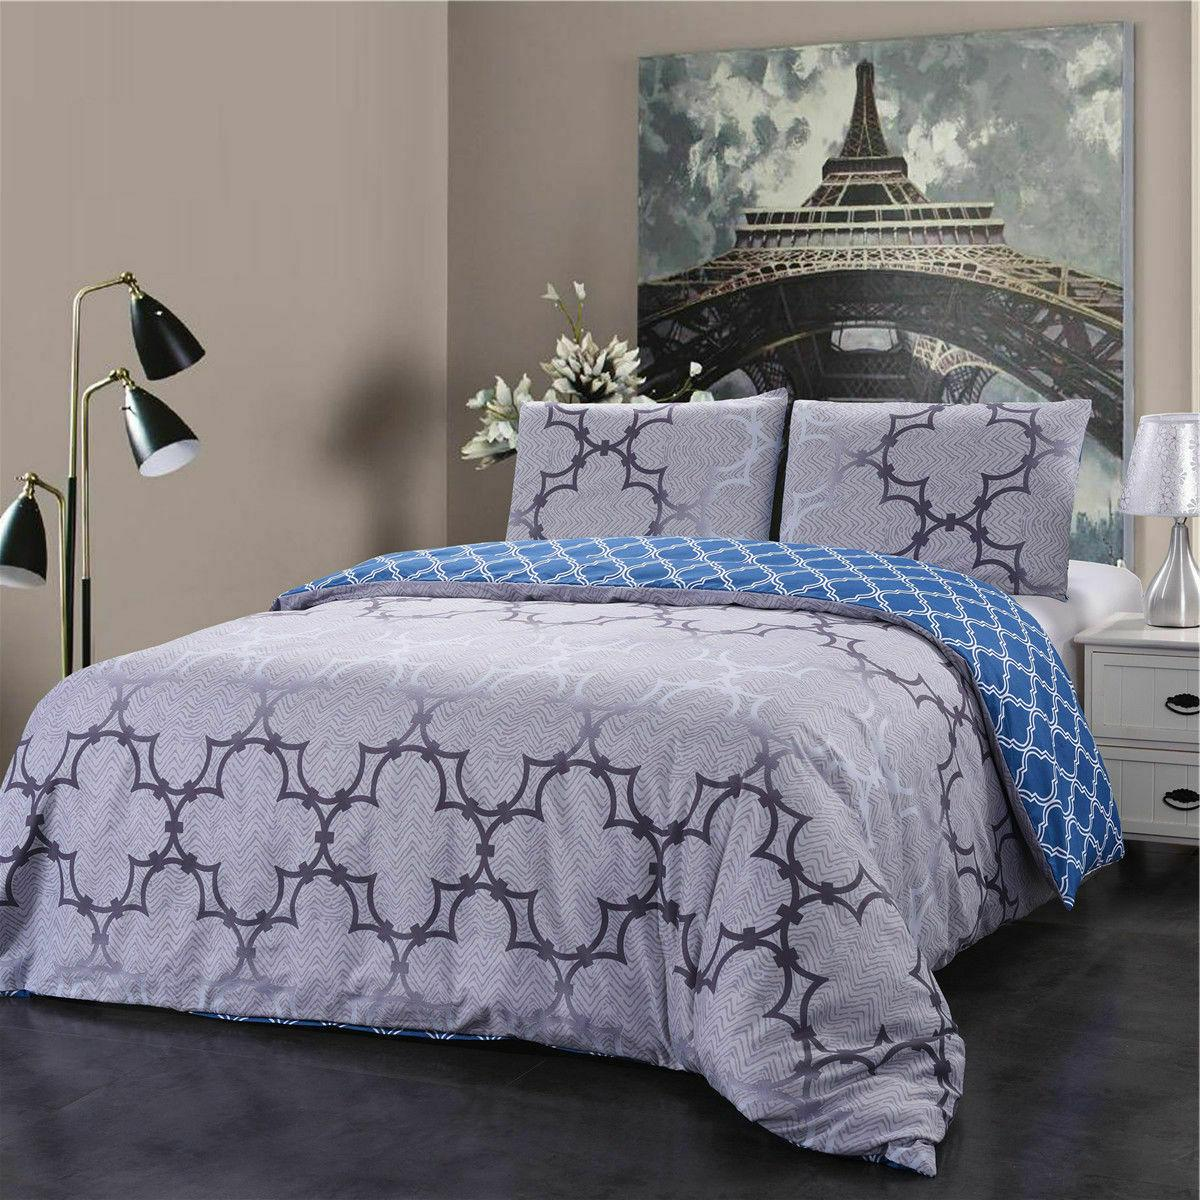 Striped Sets Bedding Boys Kids 7 colours available